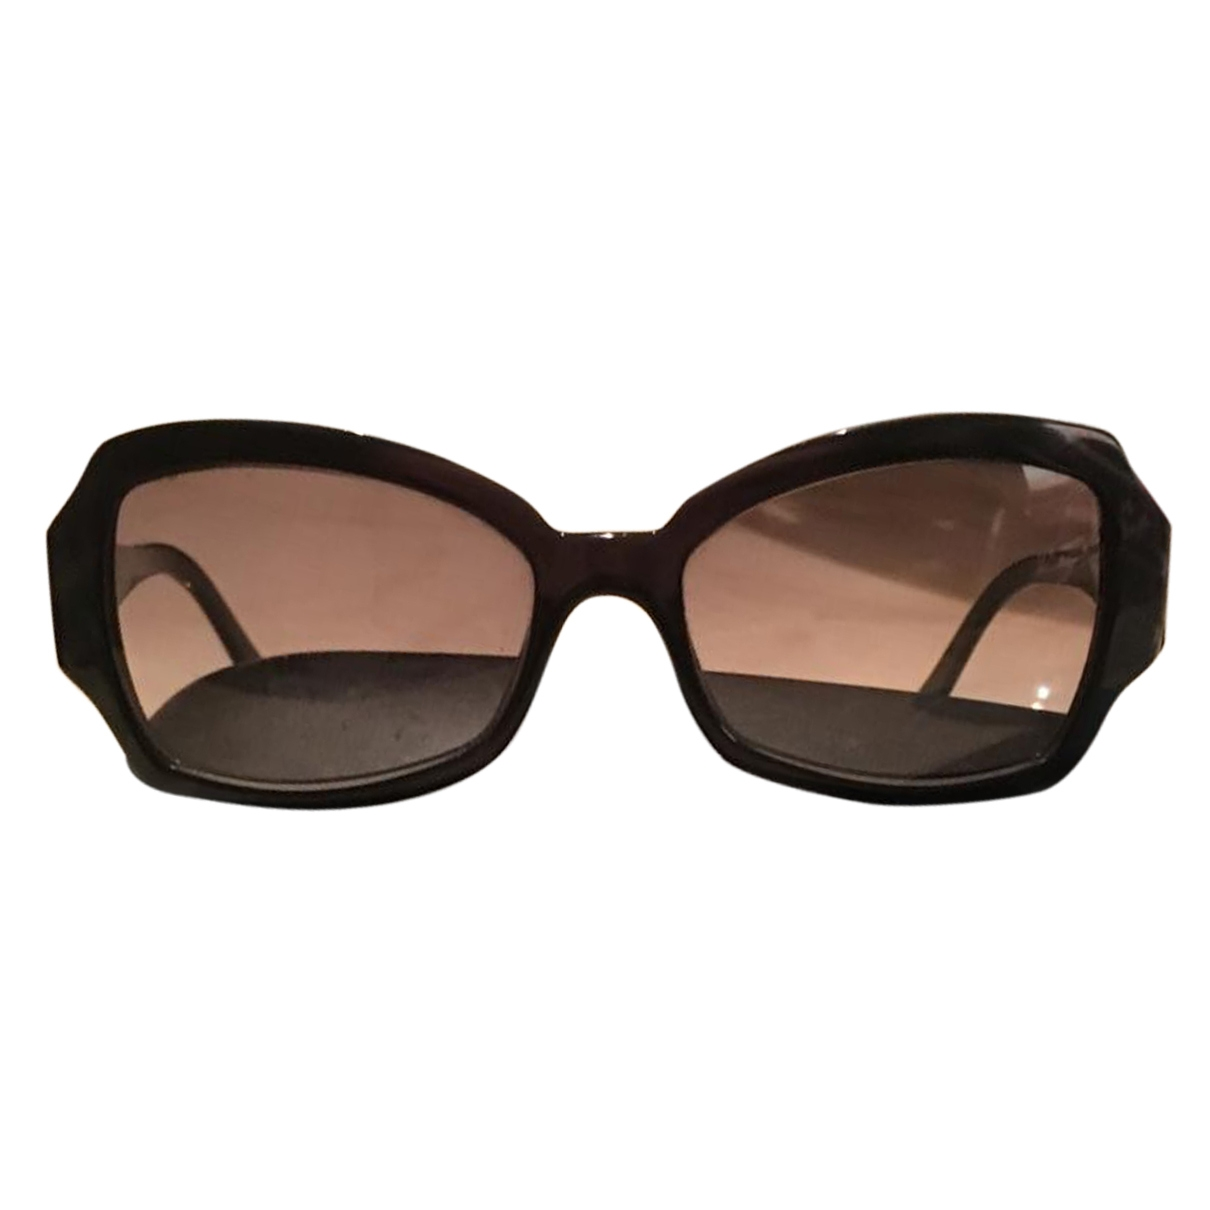 Salvatore Ferragamo \N Black Sunglasses for Women \N